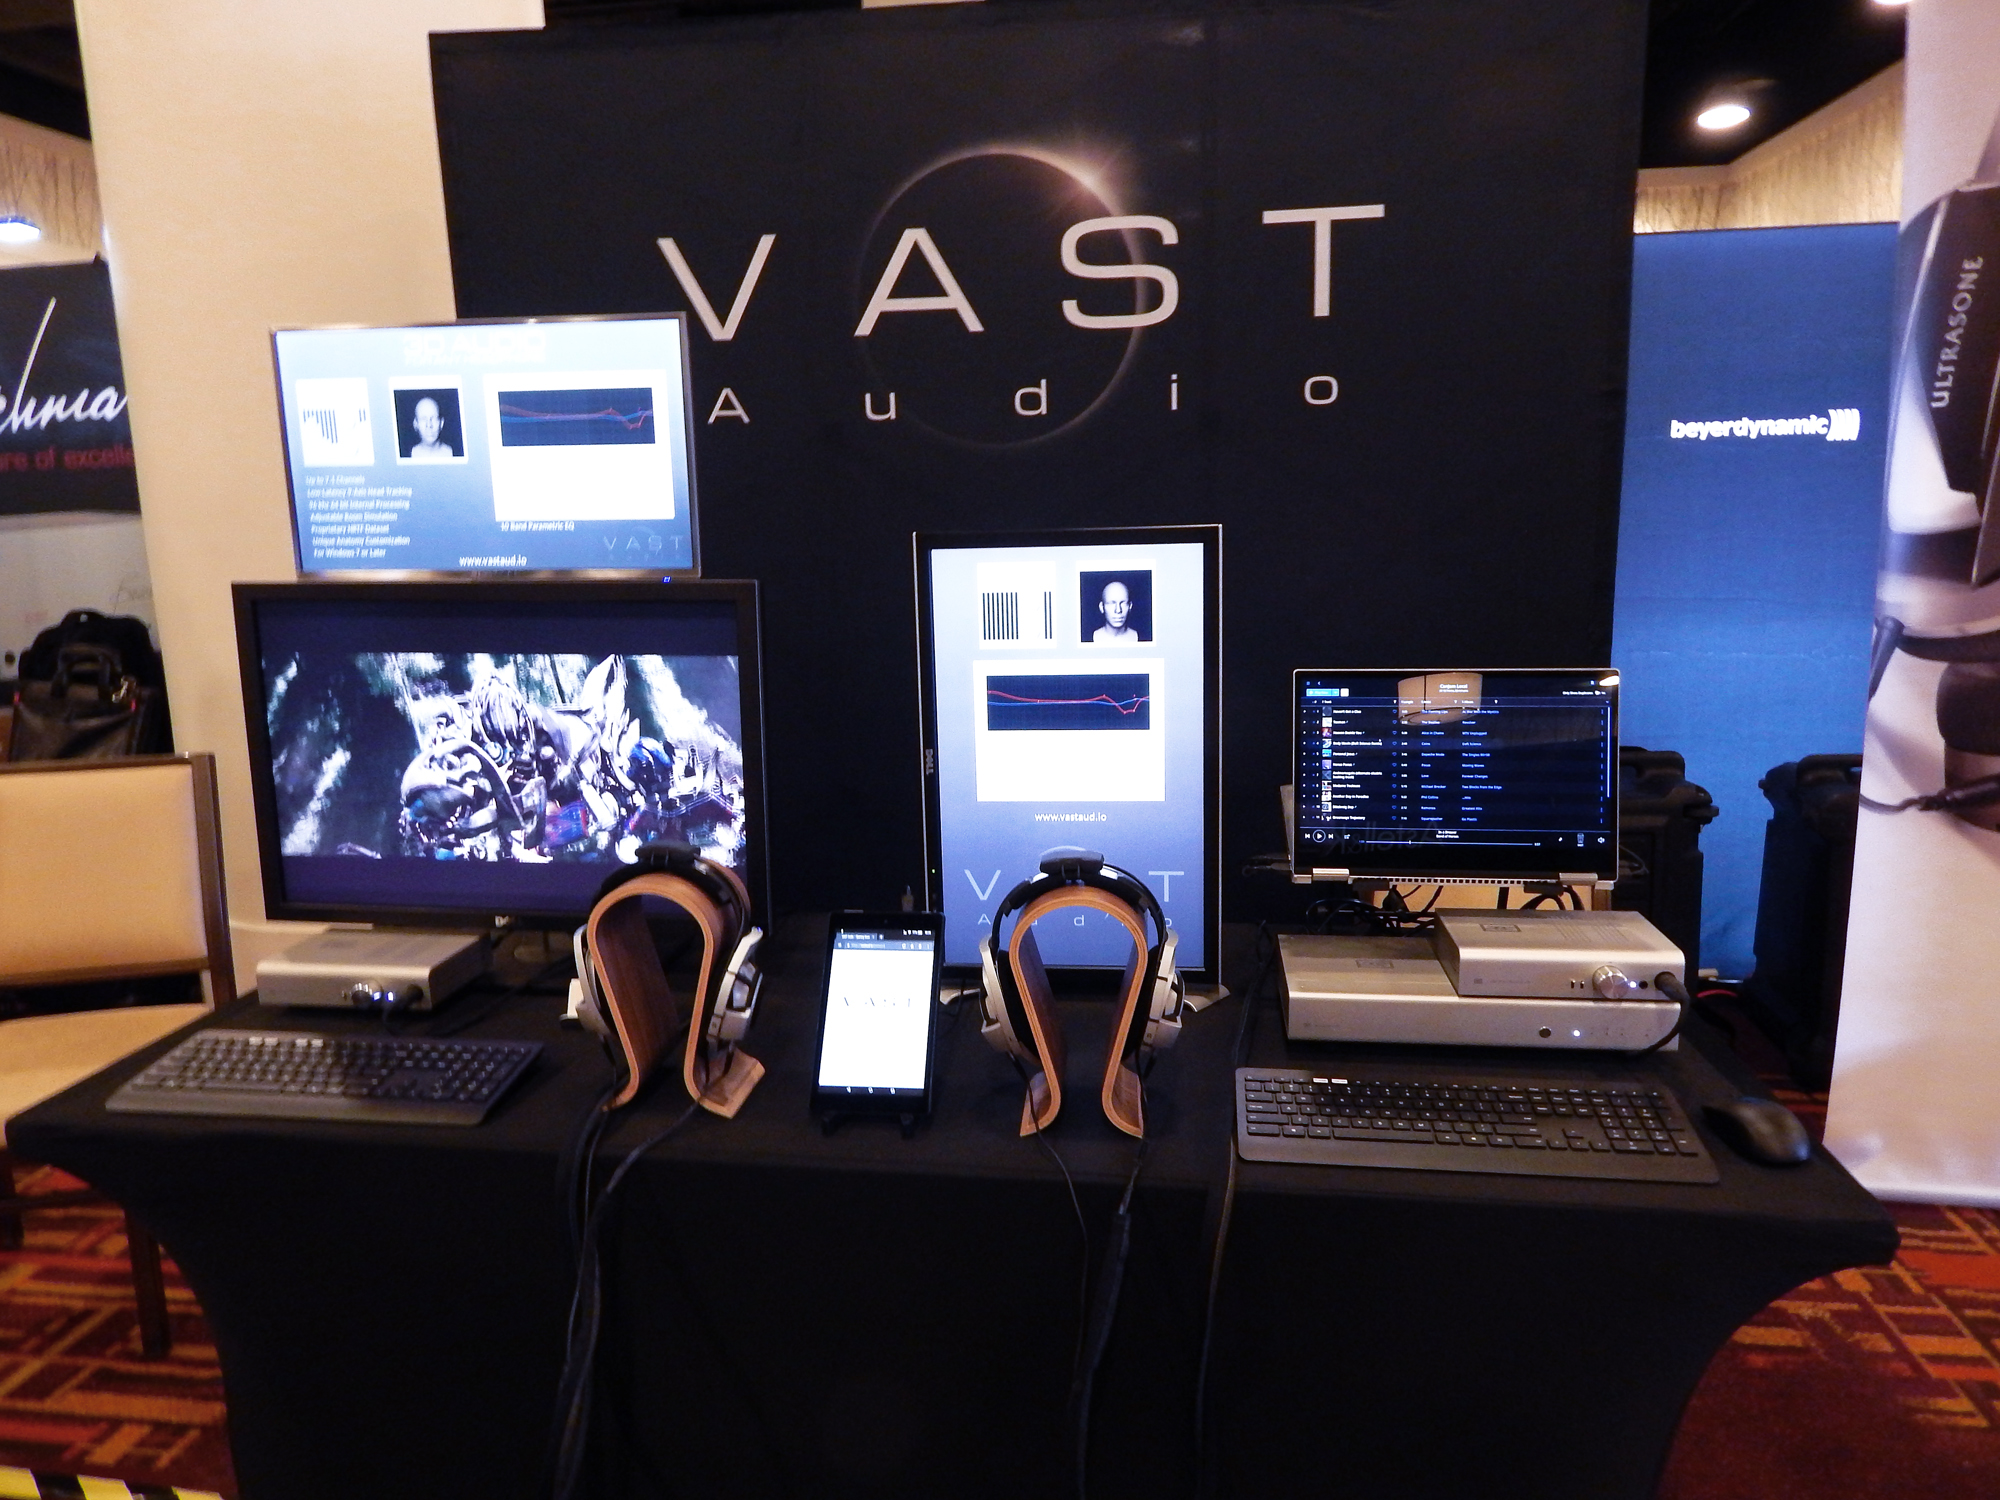 VAST Audio at CanJam SoCal 2018